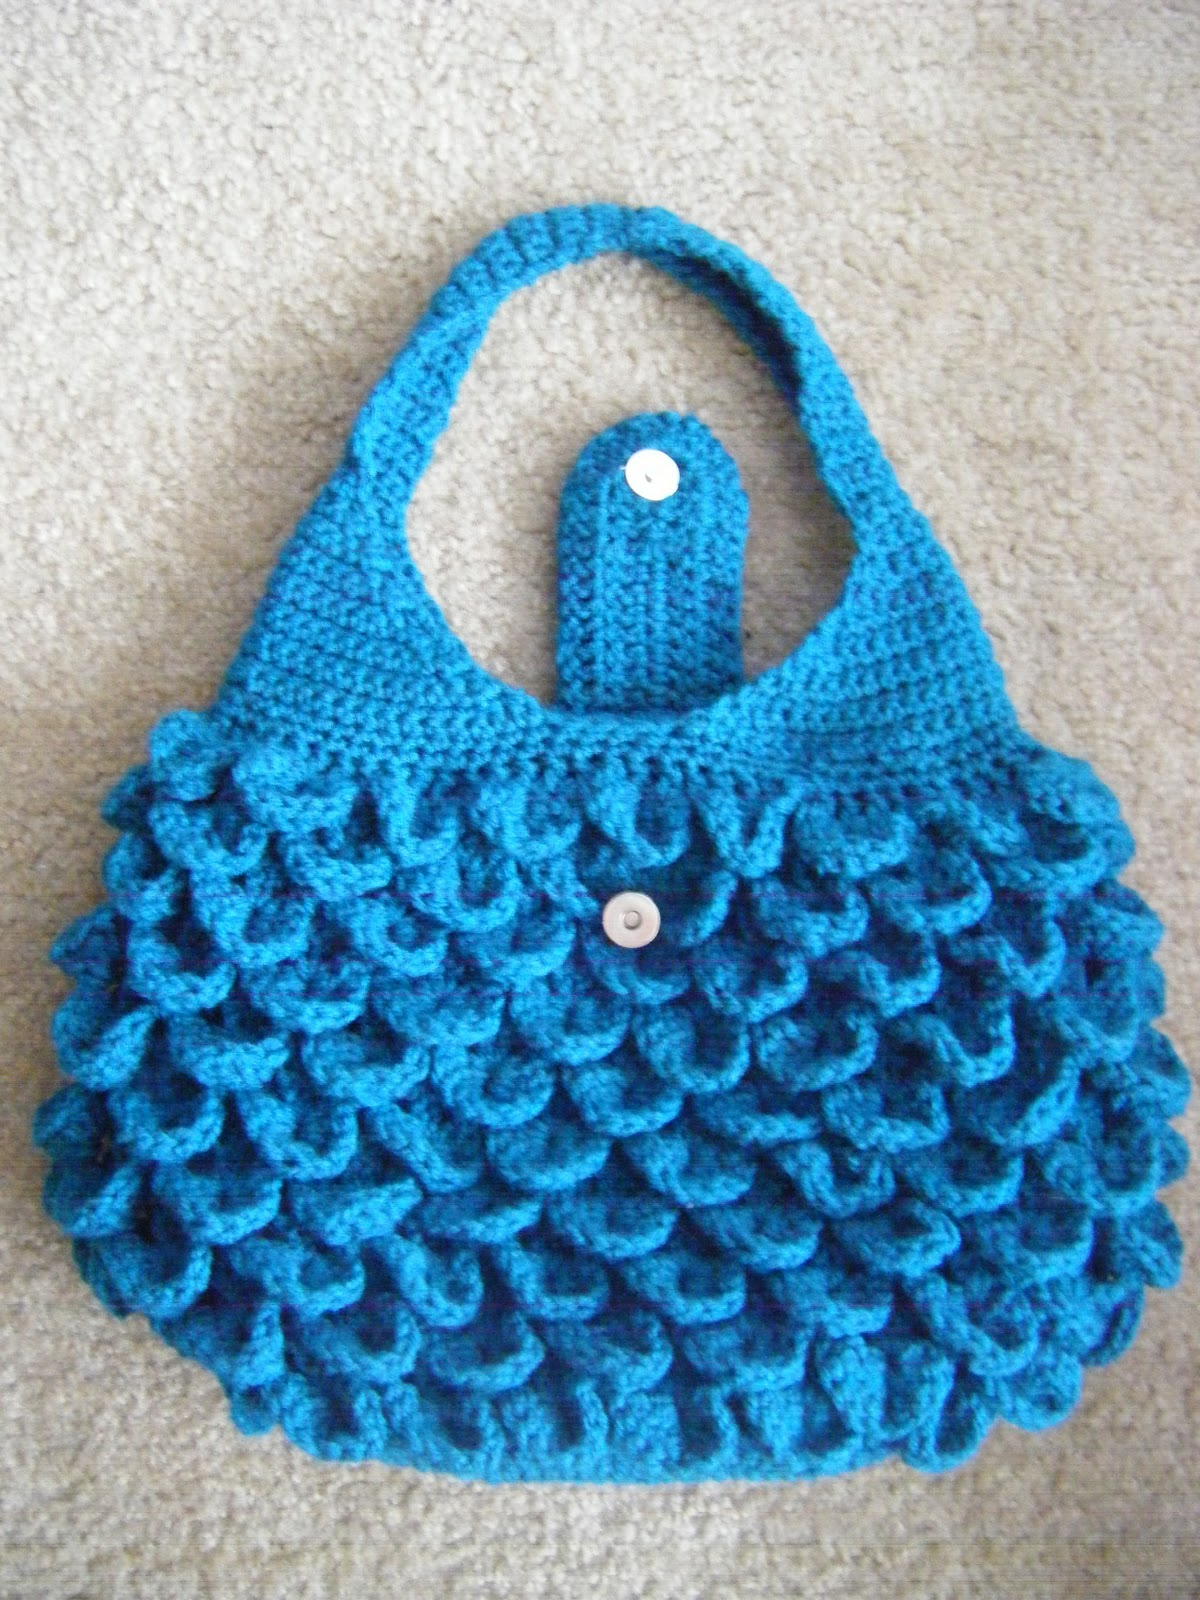 Crochet Designs For Bags : Best Patterns: Crocodile Crochet Bag PATTERN